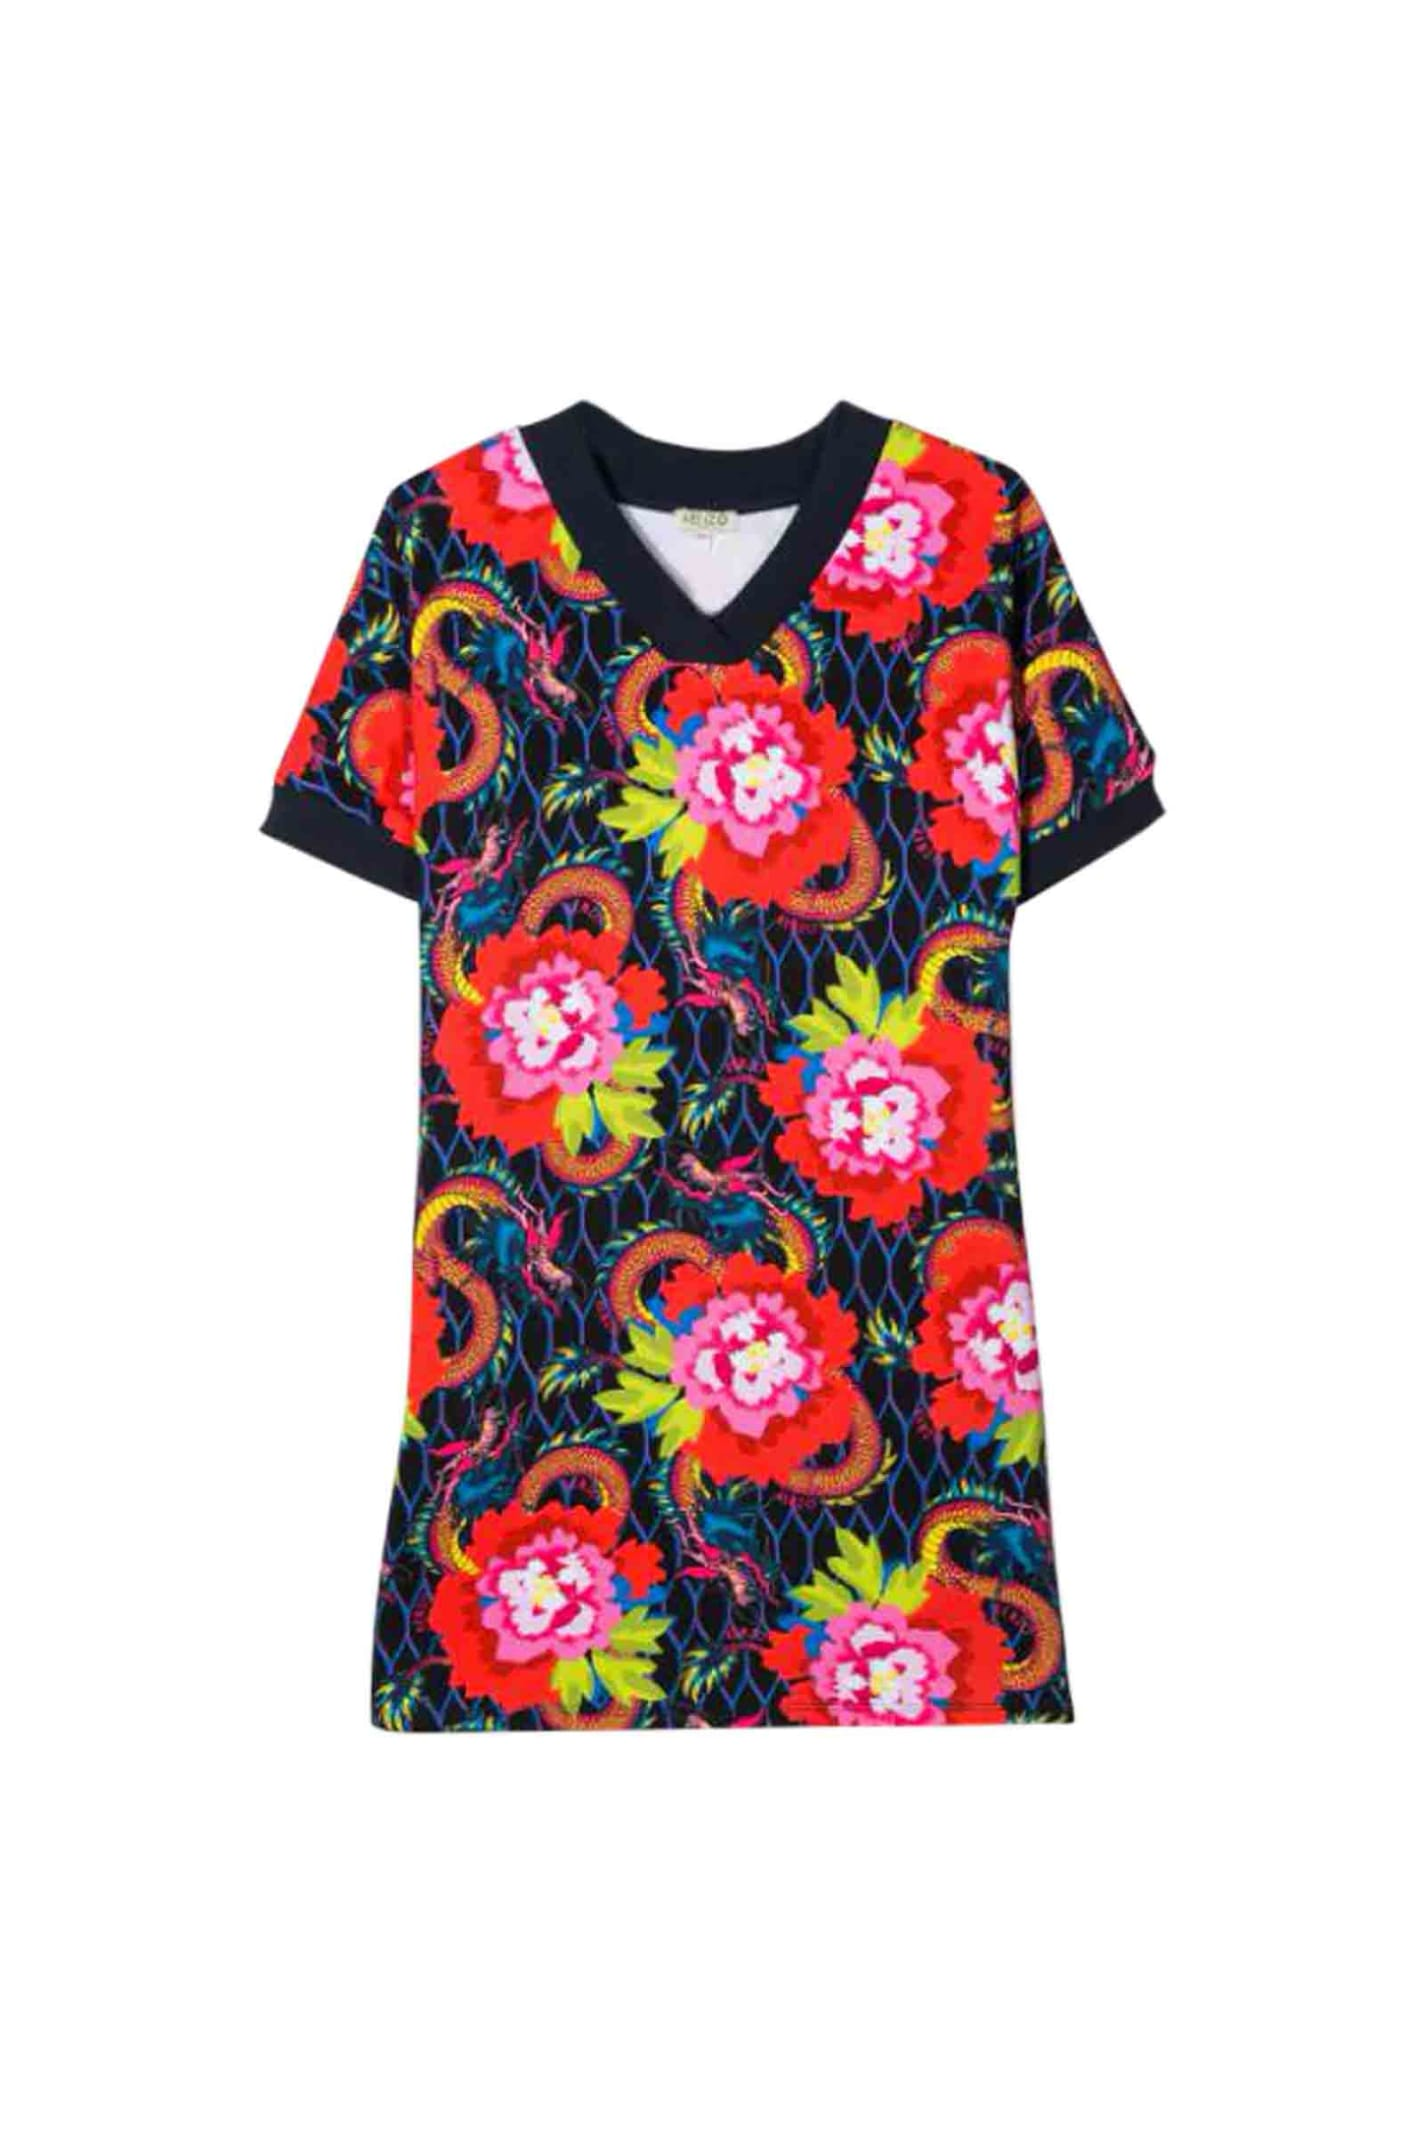 Kenzo Style Dress T-shirt Flower